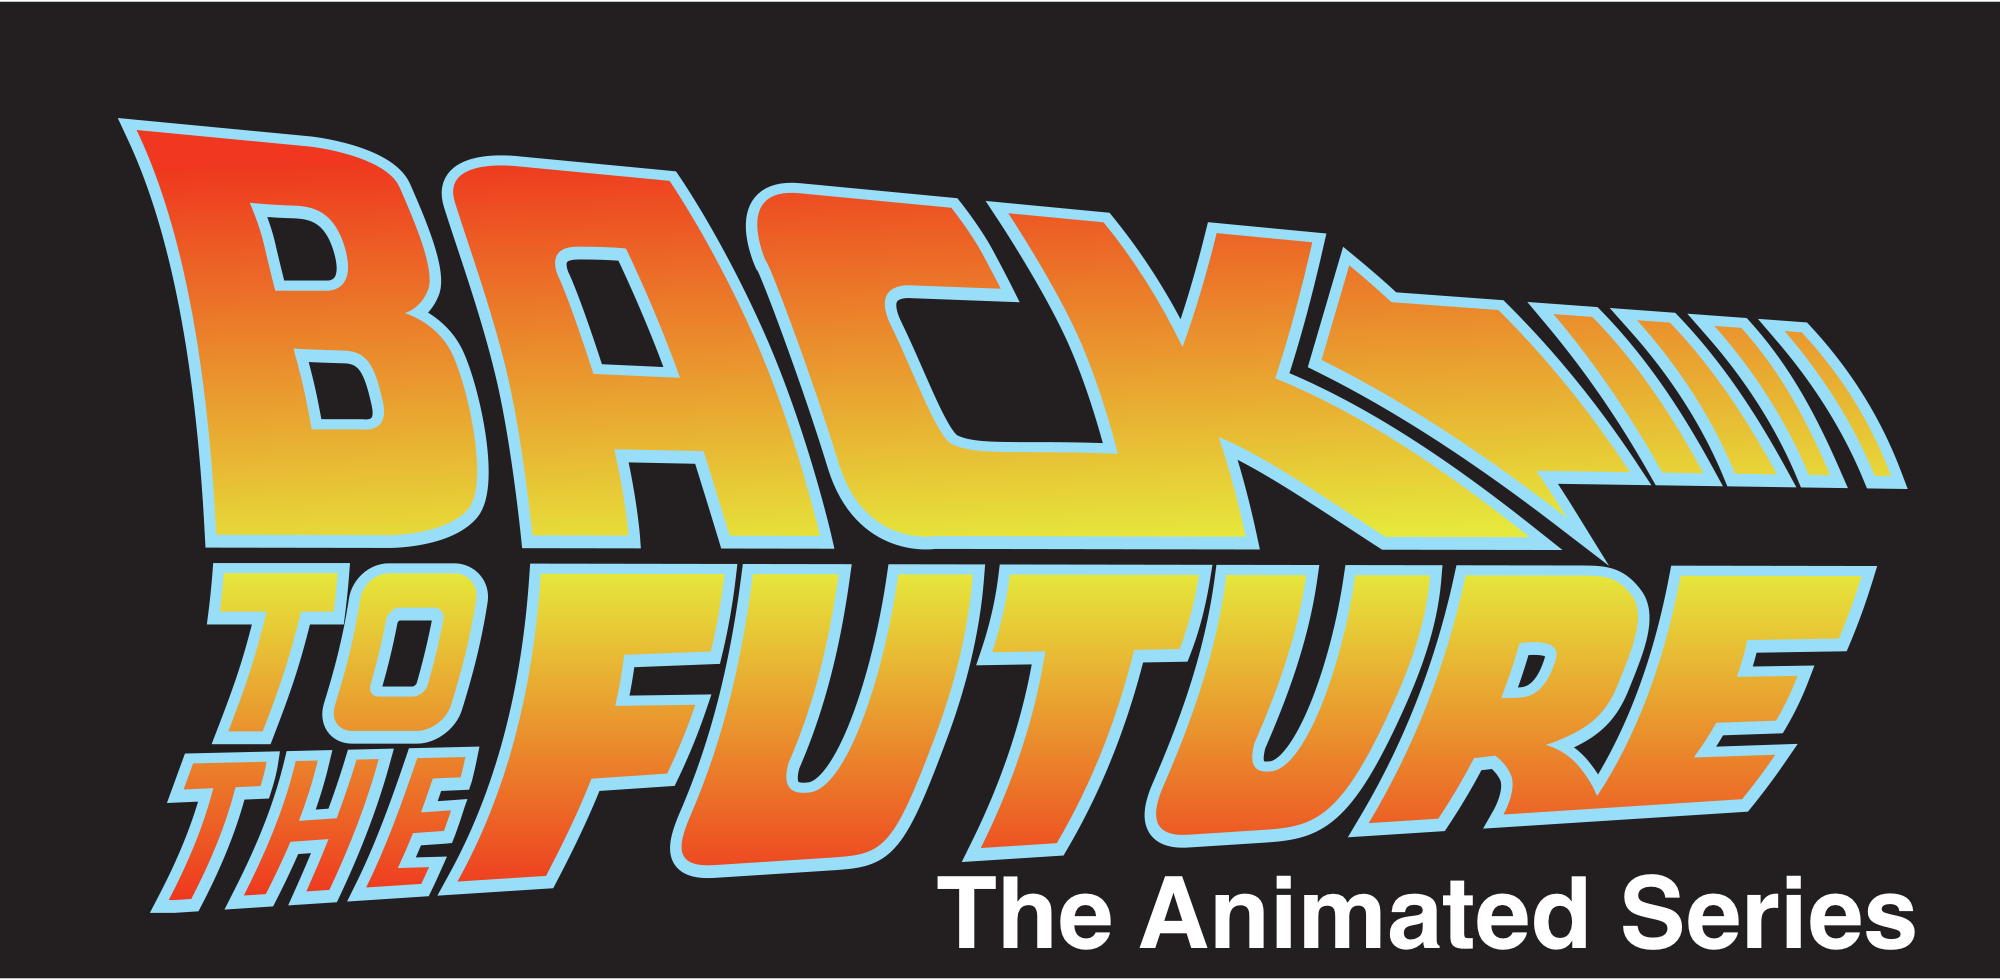 Back to the Future: The Animated Series (McDonald's, 1992)